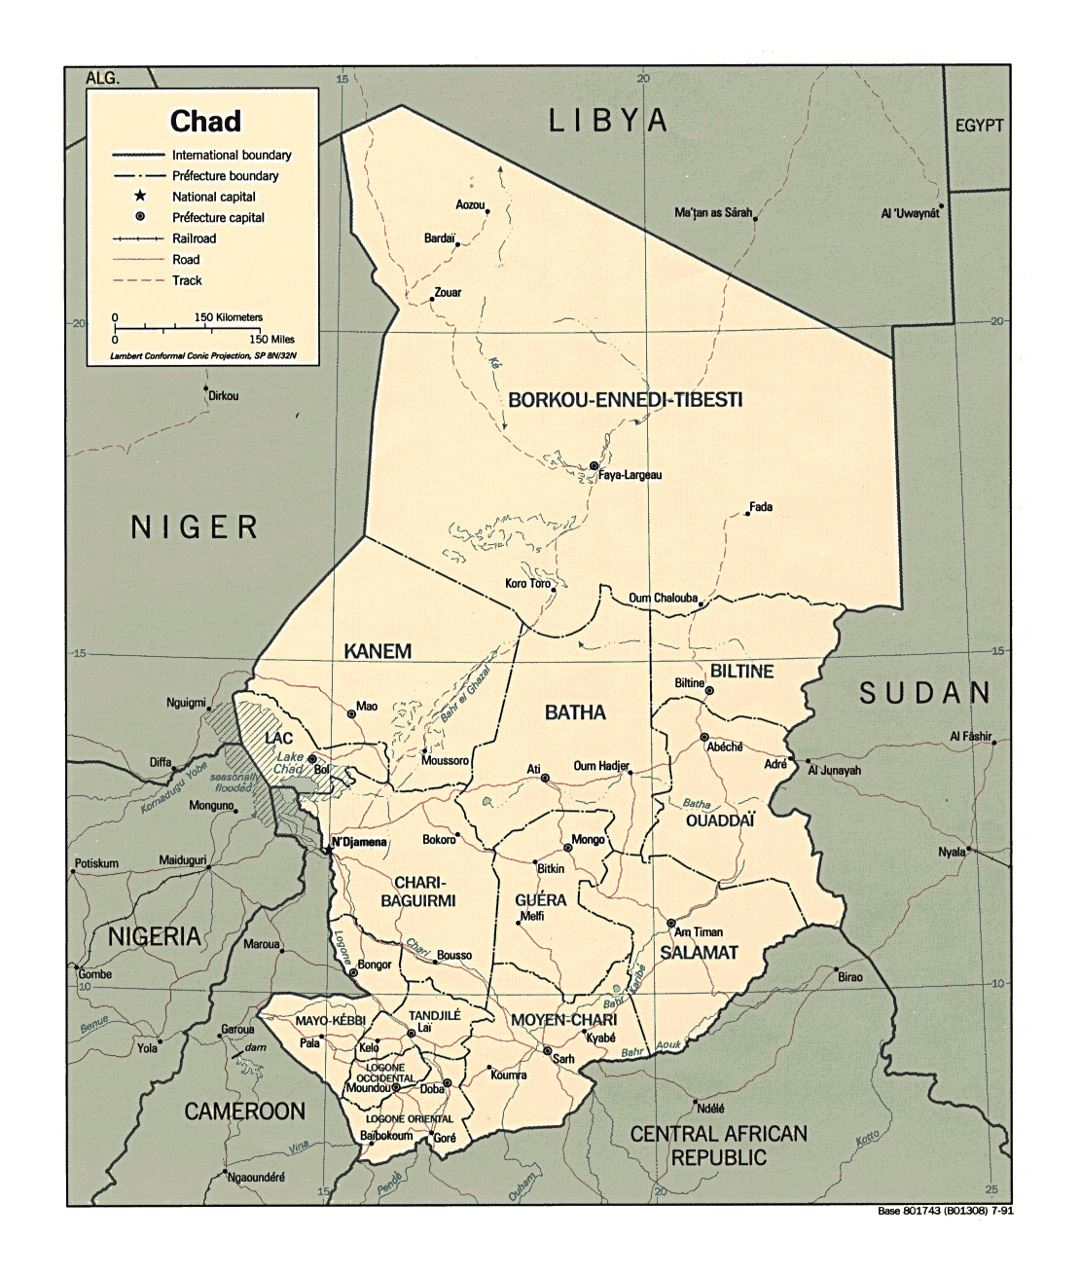 Detailed political and administrative map of Chad with roads and major cities - 1991